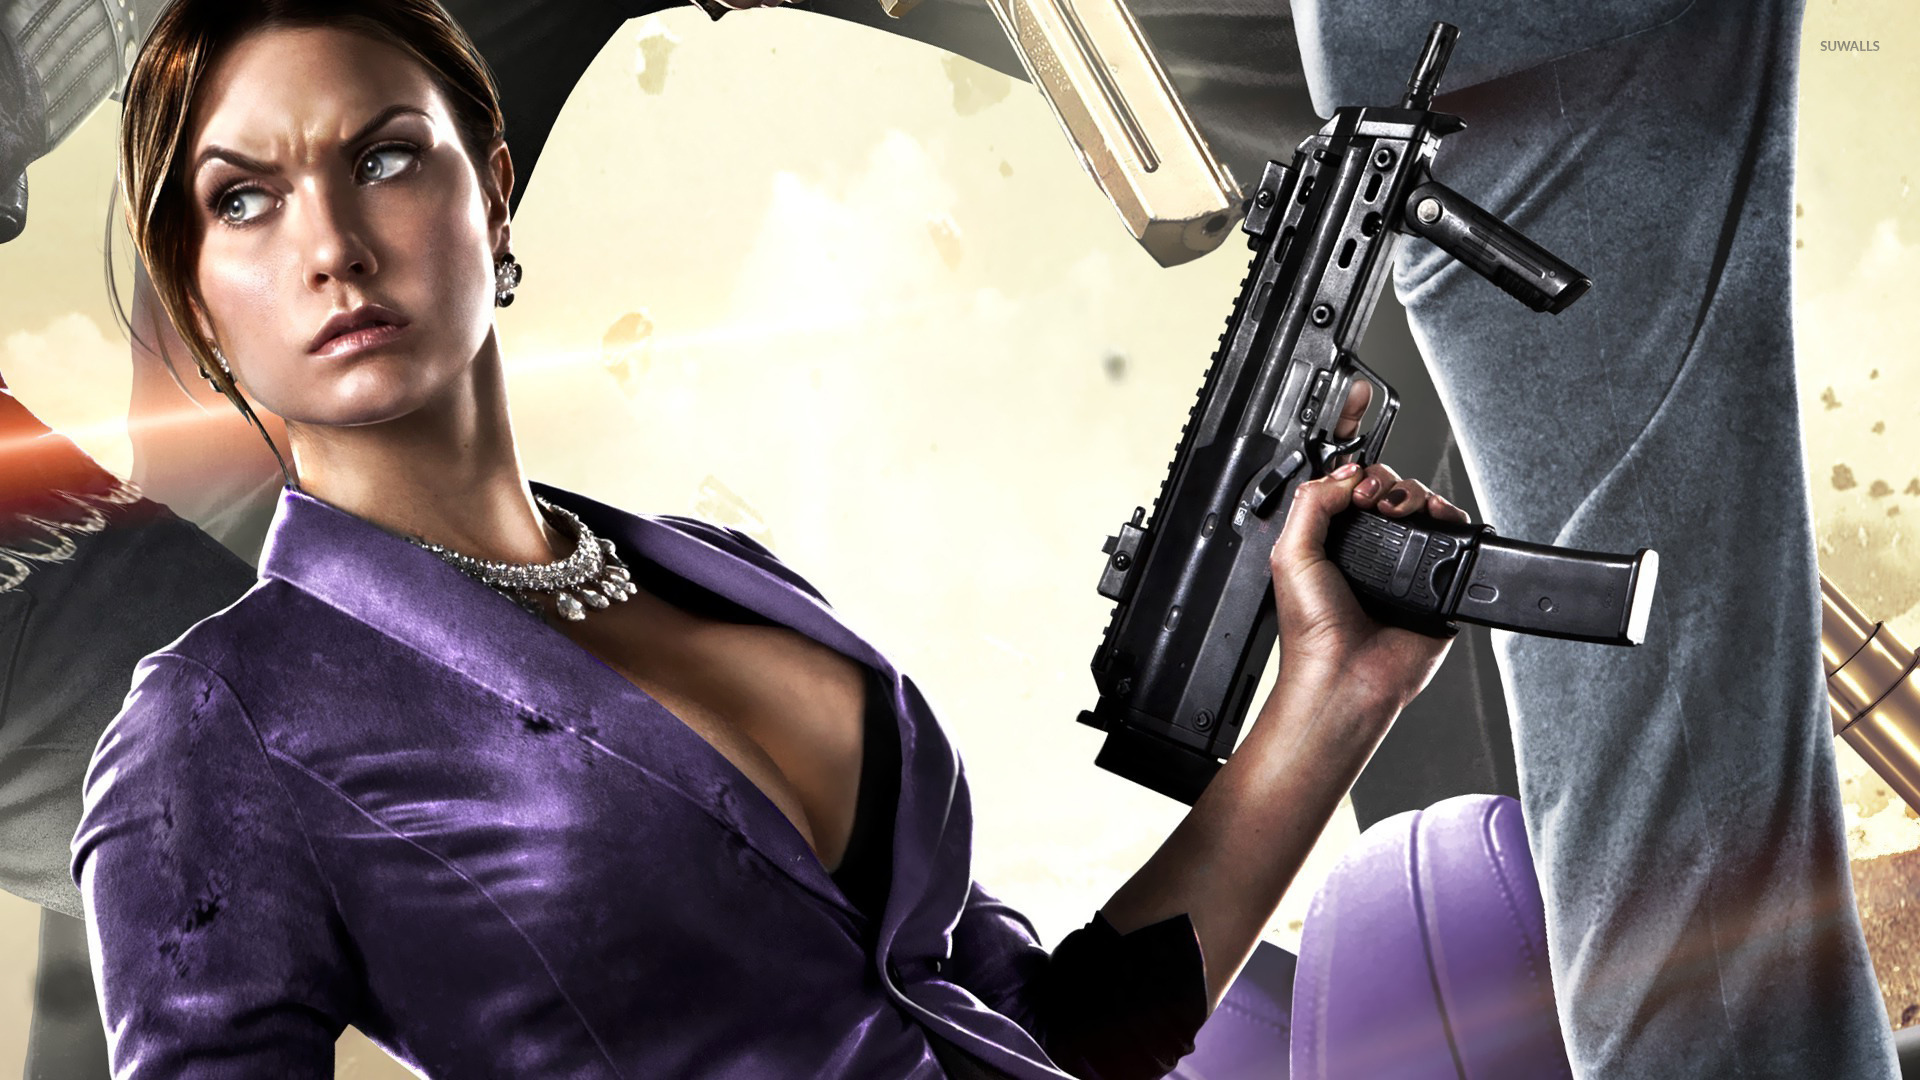 Saints Row Iv 2 Wallpaper Game Wallpapers 21478